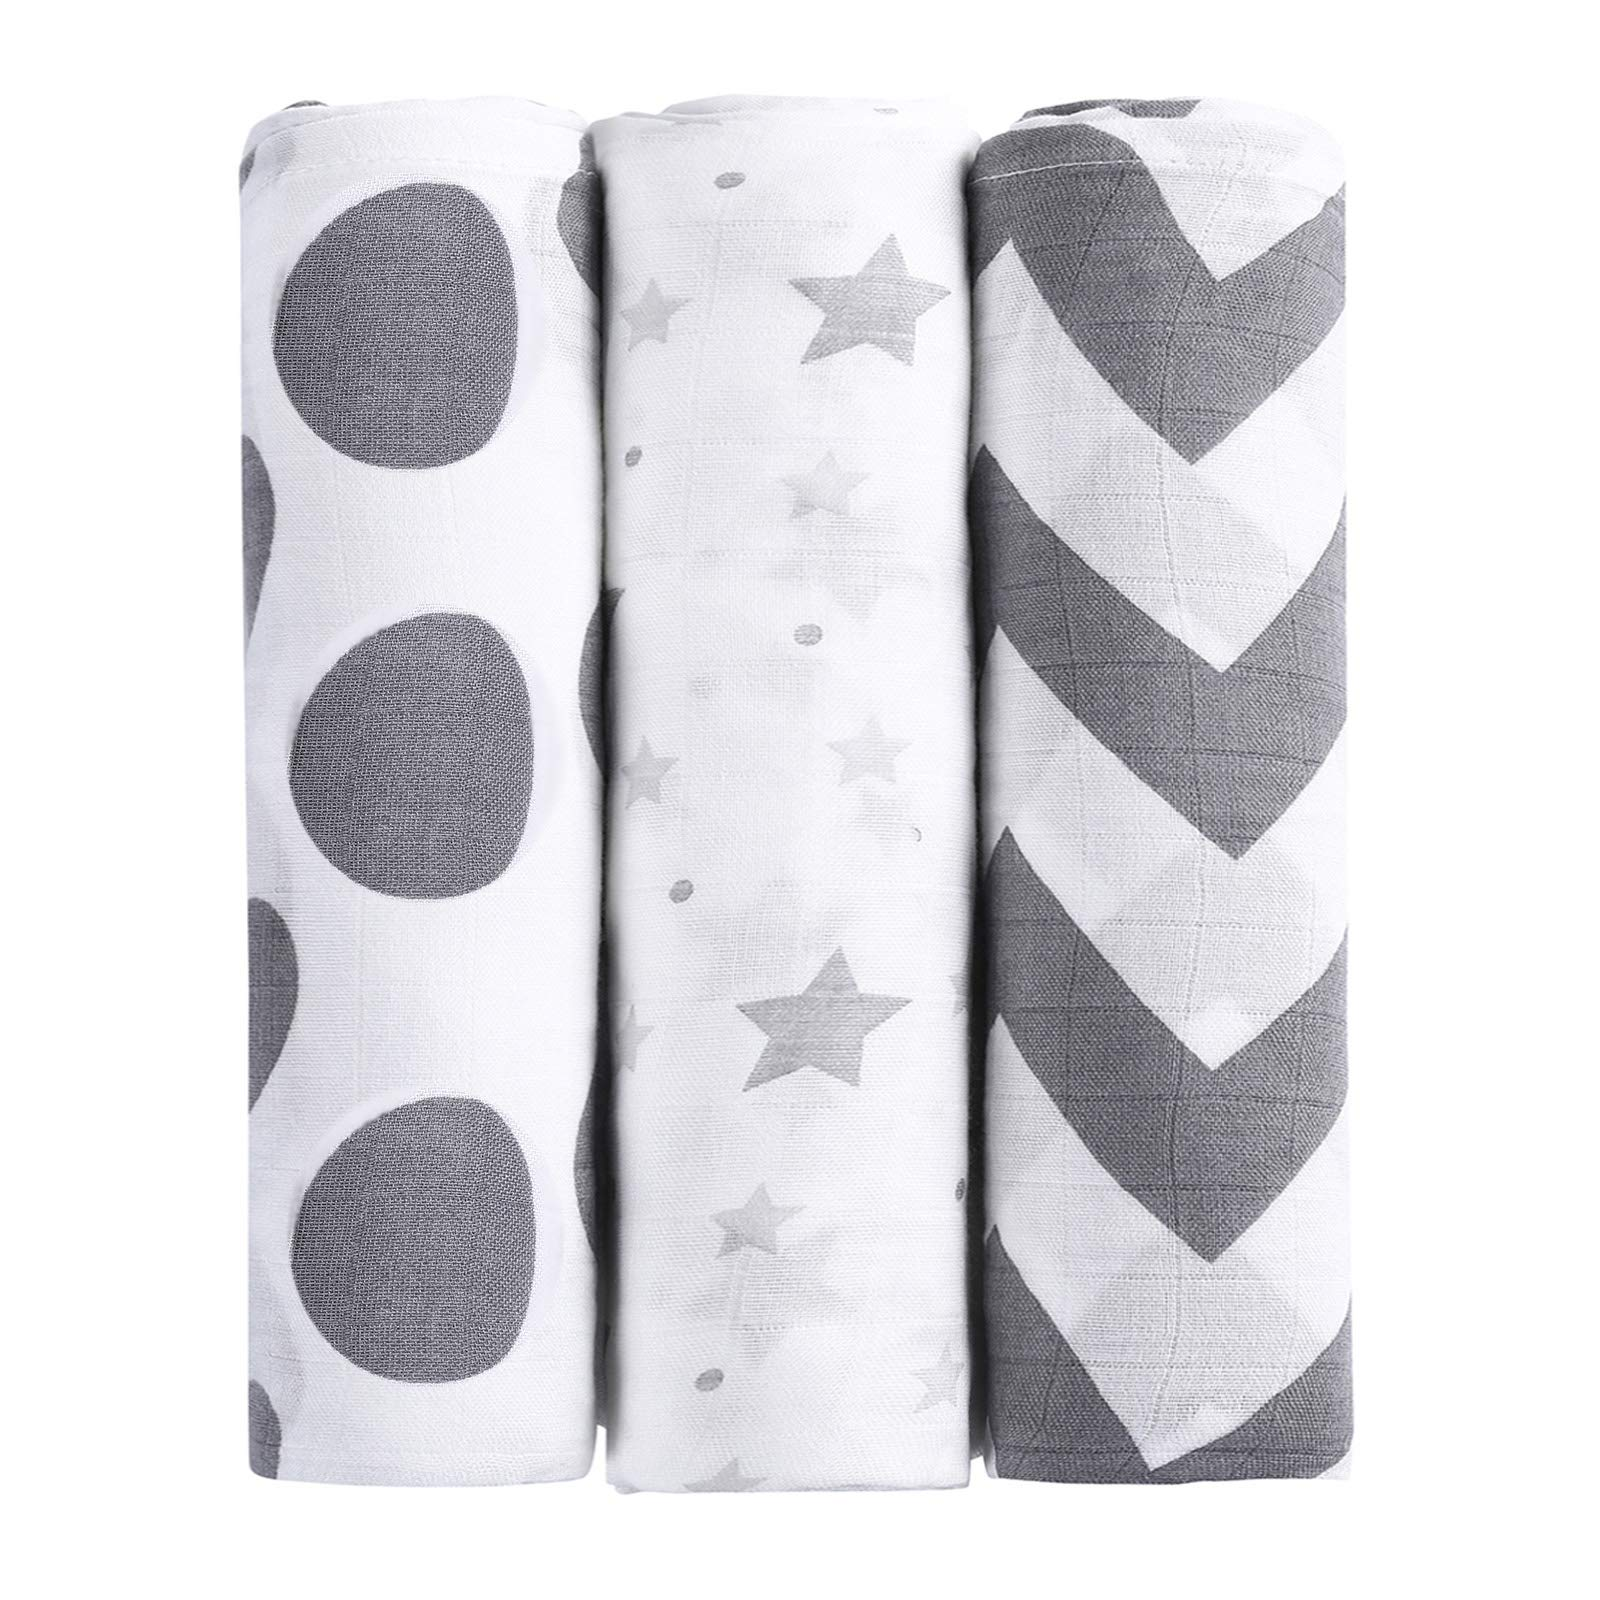 MBJERRY Muslin Swaddle Blankets for Newborn - Large 47x47 Inches Soft Receiving Blanket Pack of 3 Ideal for Baby Boys and Girls Shower Gifts(Style #3)